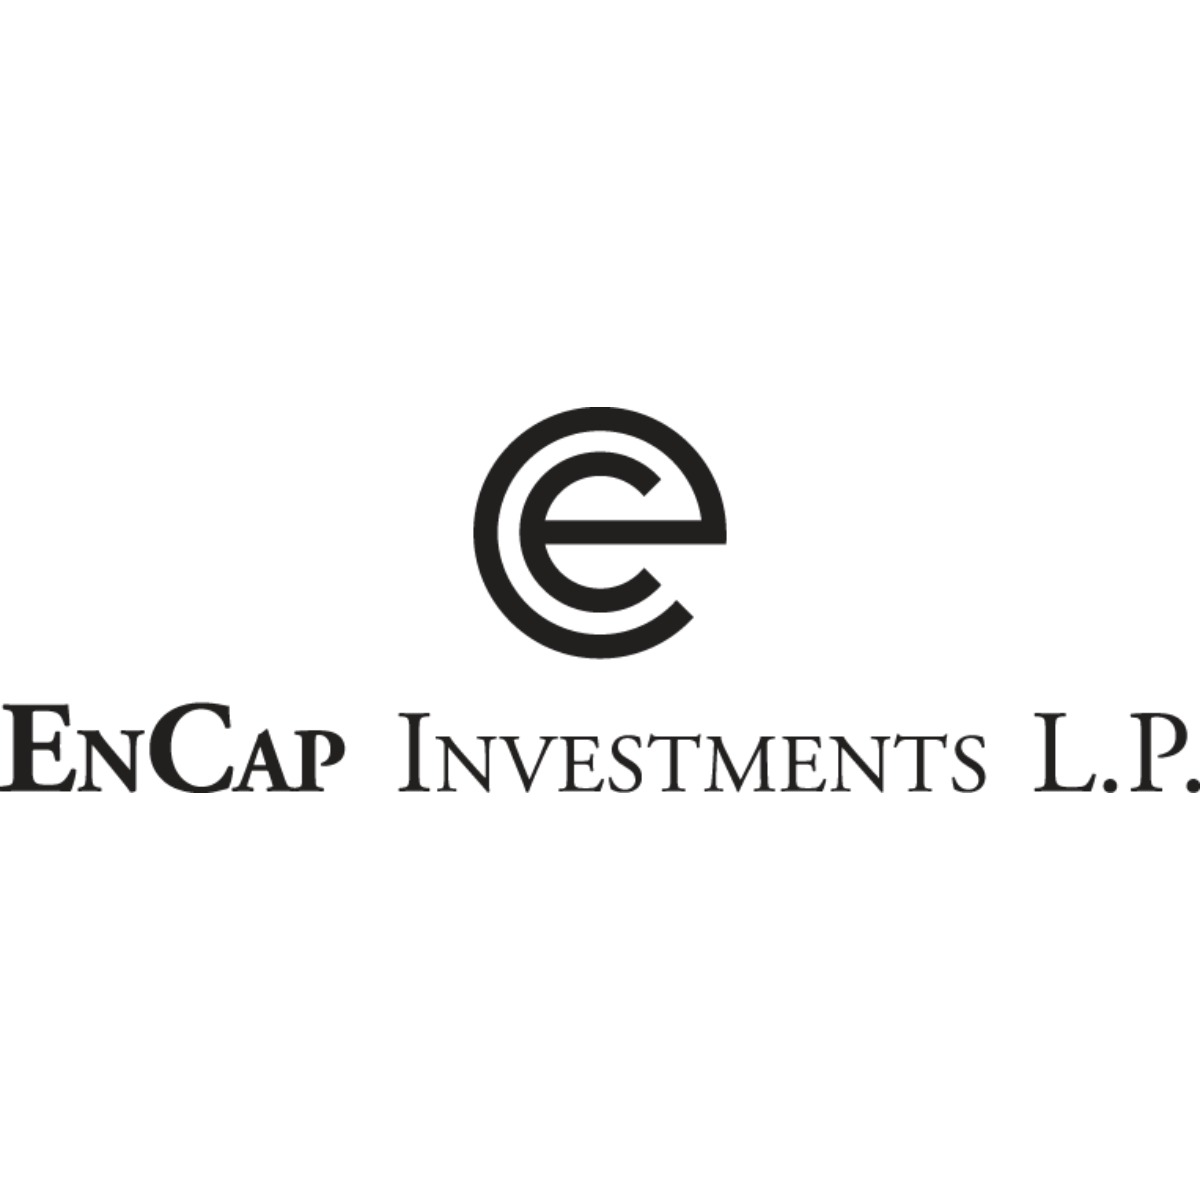 encap_investments